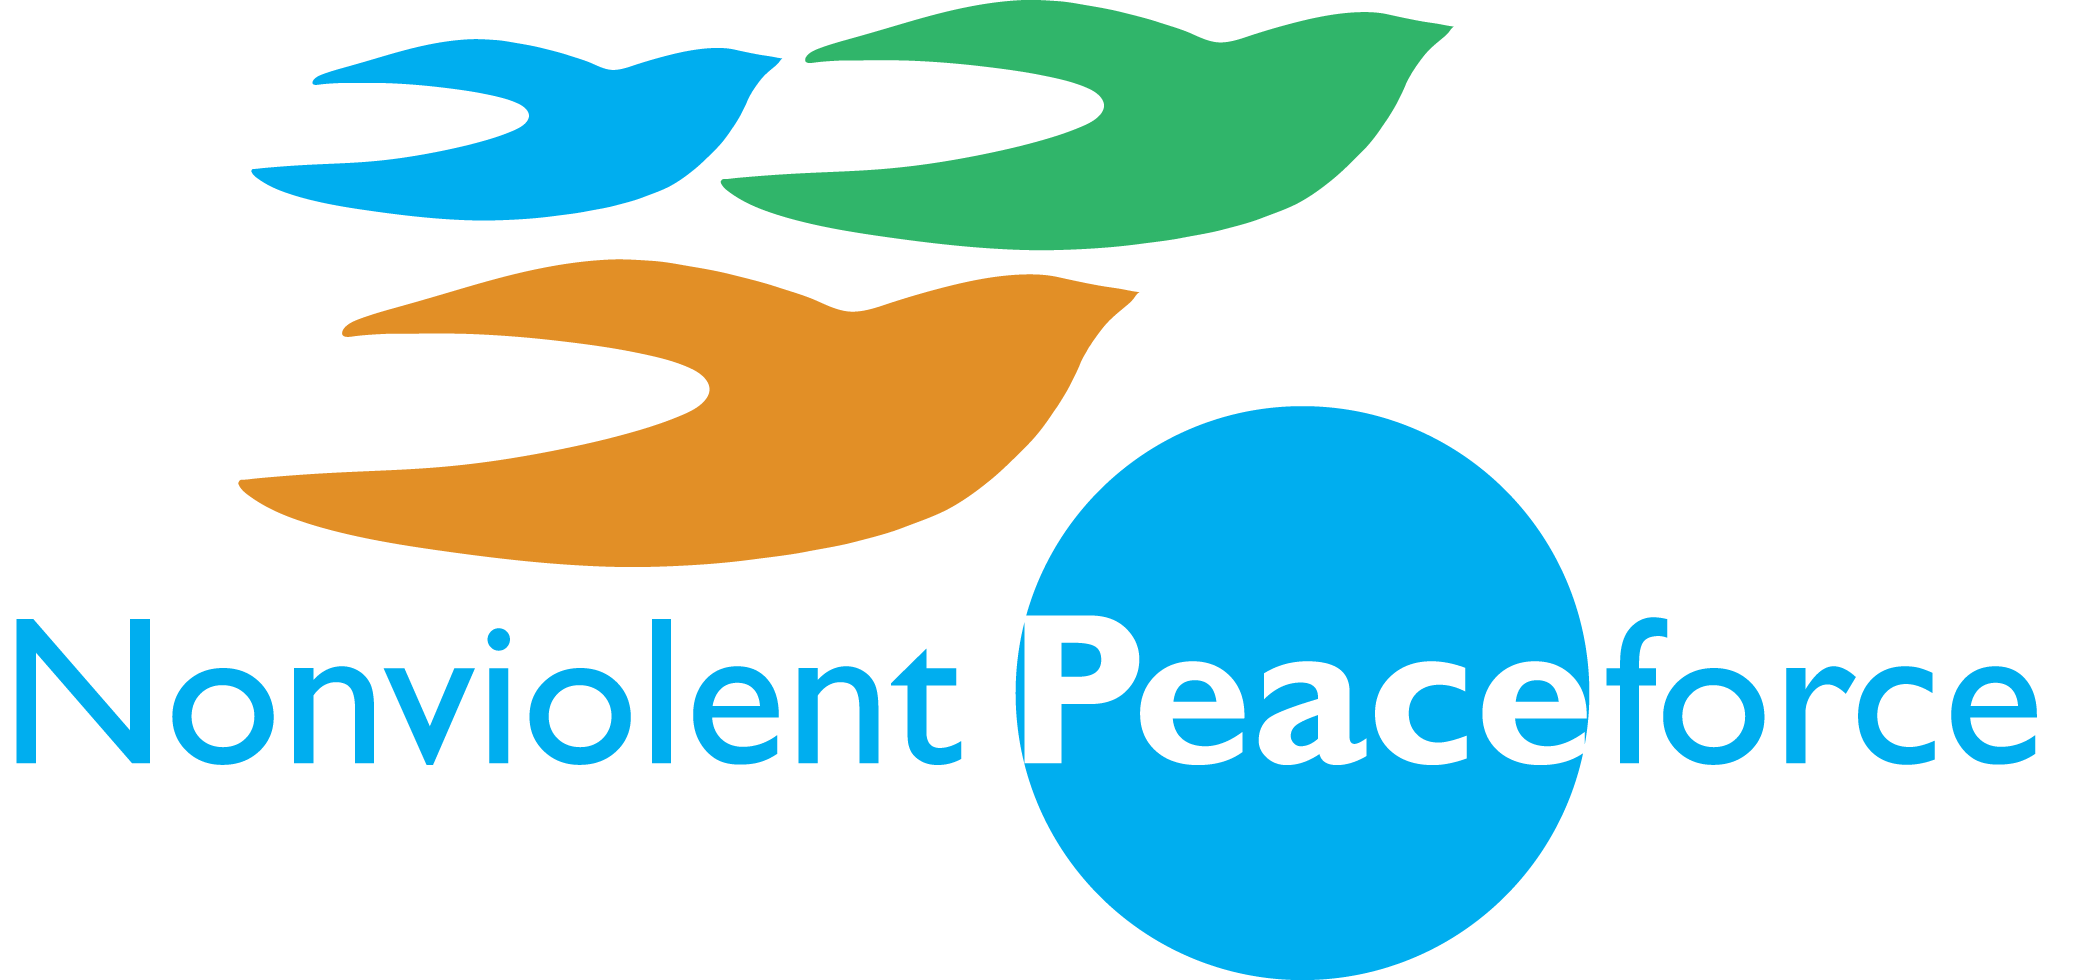 nonviolent peaceforce logo